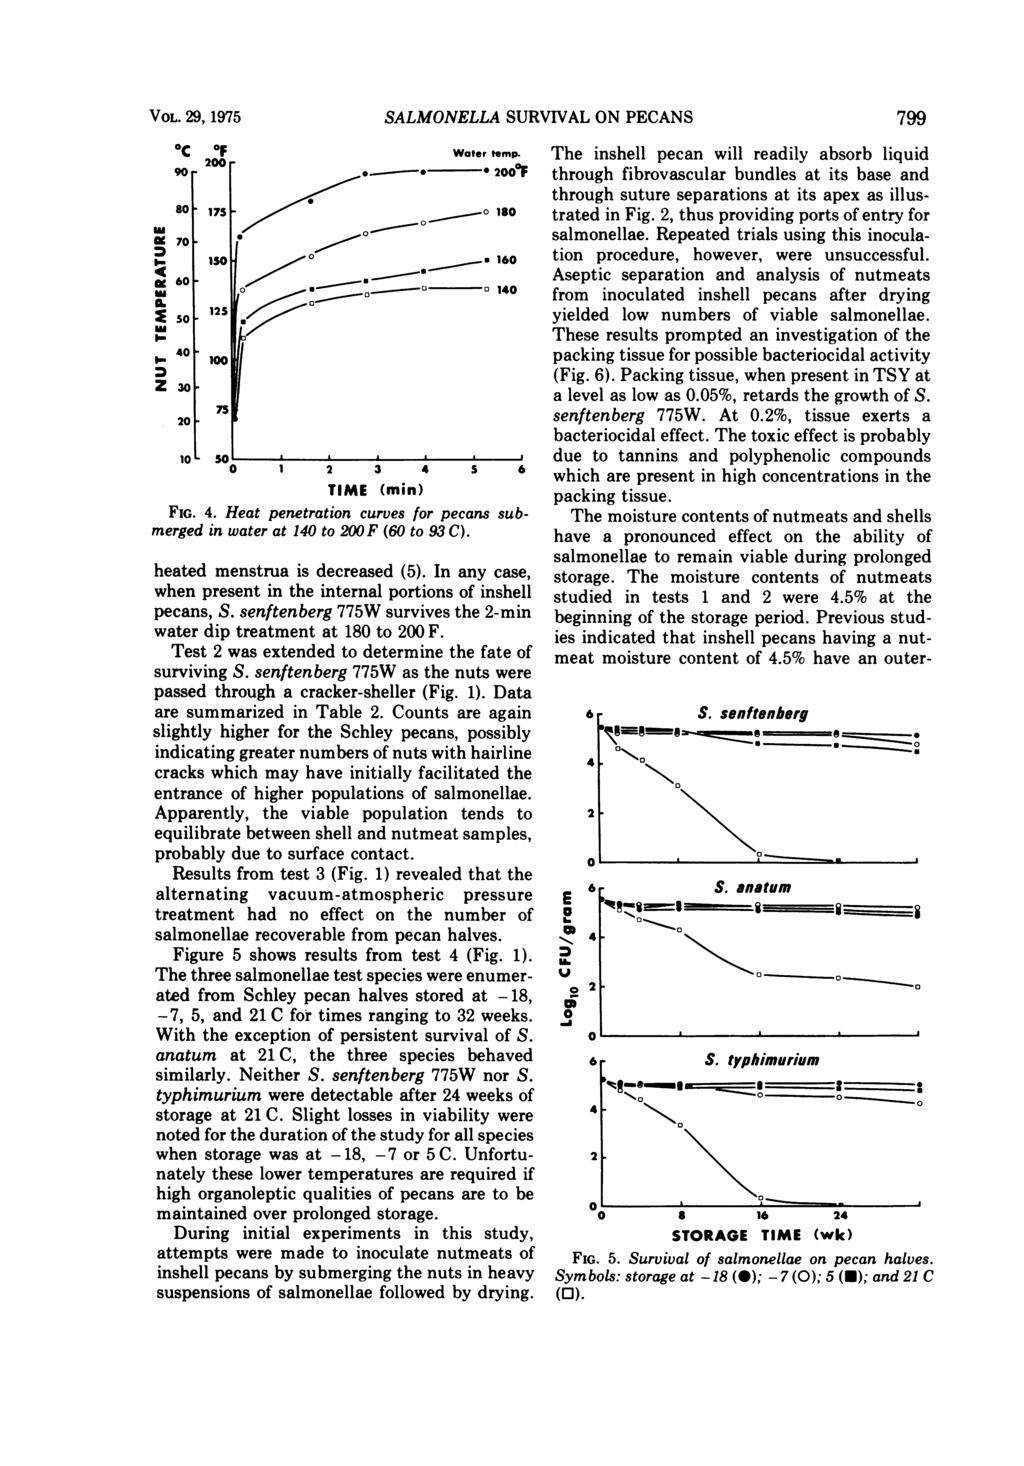 VOL. 29, 1975 SALMONELLA SURVIVAL ON PECANS 799 oc 90 r 80 g 70 o IM 60 A.W X so B 40 Z 301 I-~ 20-10 So 0 1 2 3 4 5 6 TIME (min) FIG. 4. Heat penetration curves for pecans submerged in water at 140 to 200F (60 to 93 C).